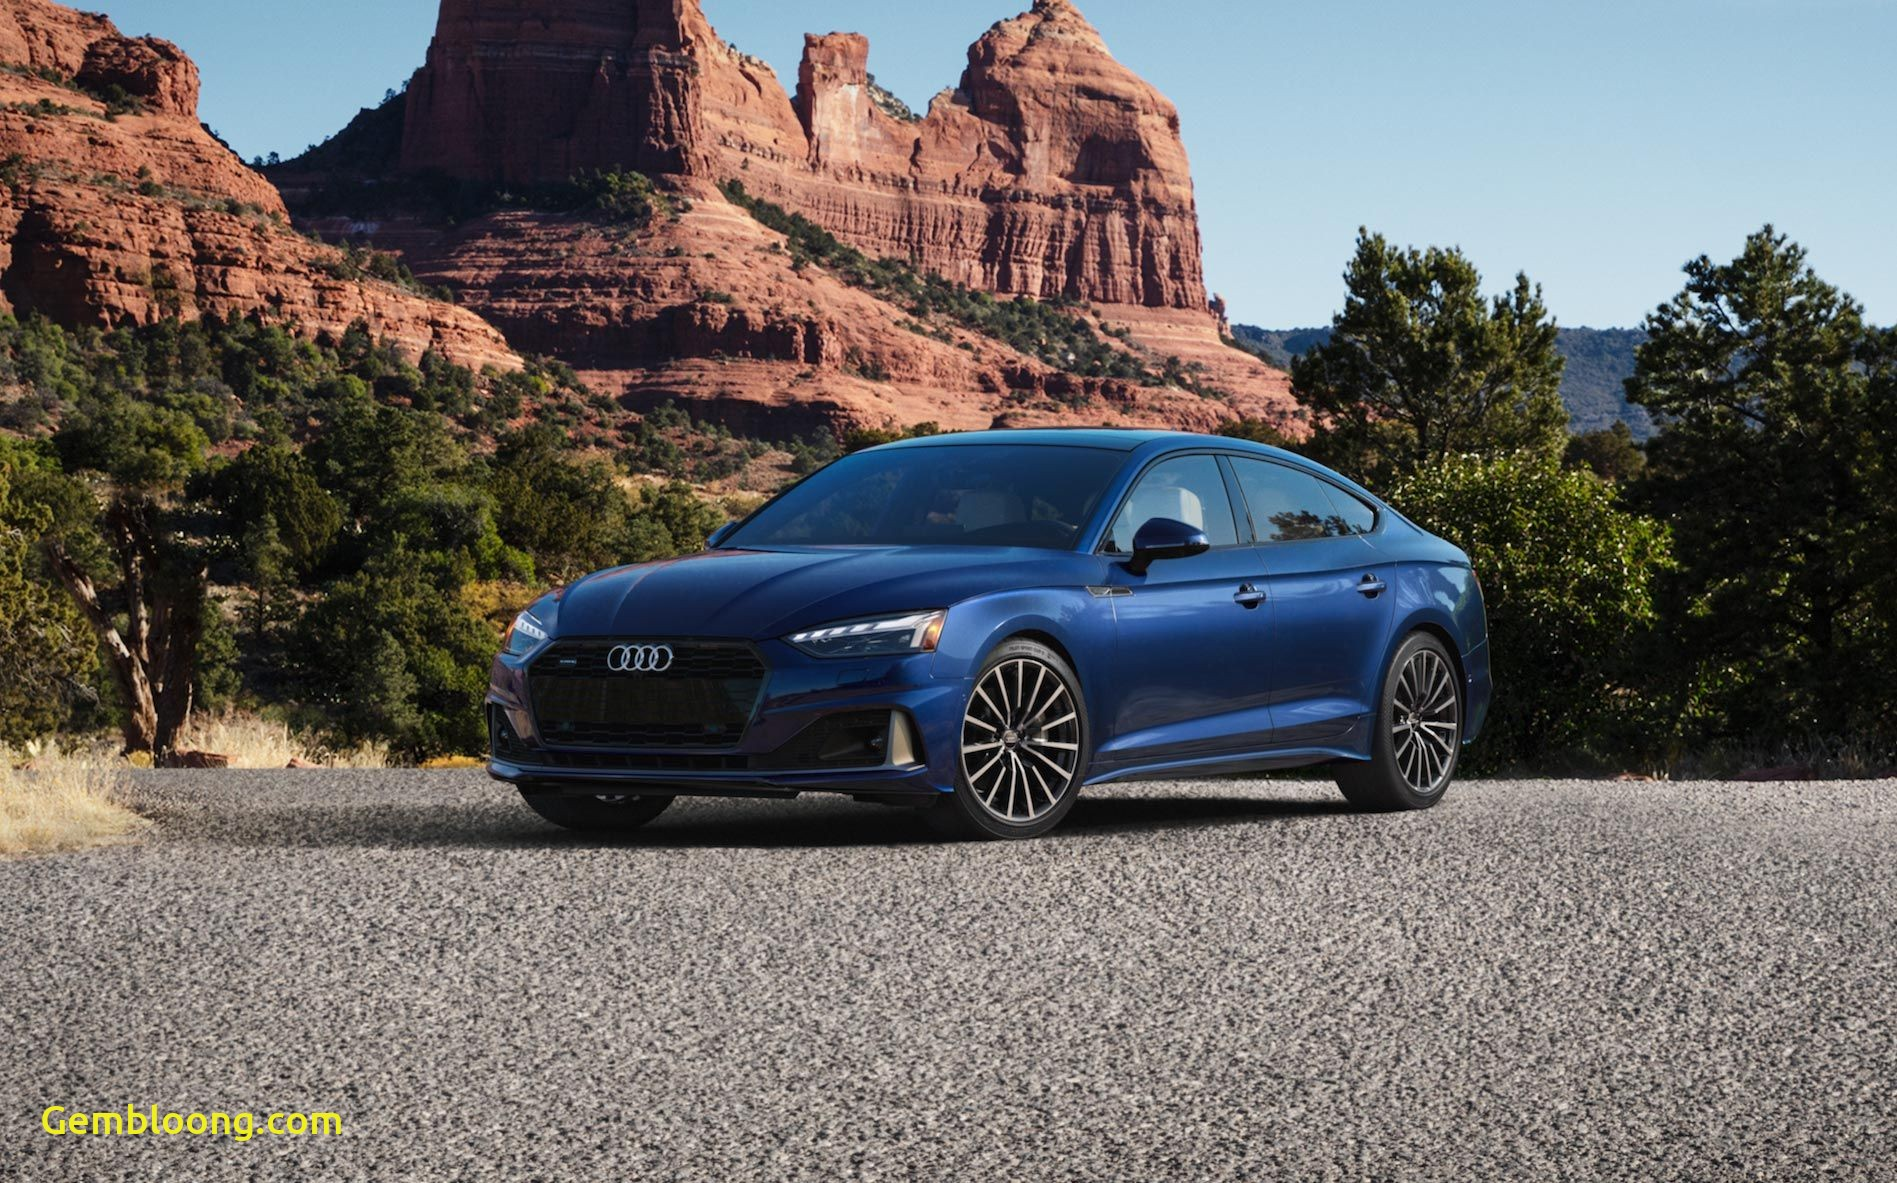 Audi Cpo Lovely 2020 Audi A5 Sportback Review Pricing and Specs